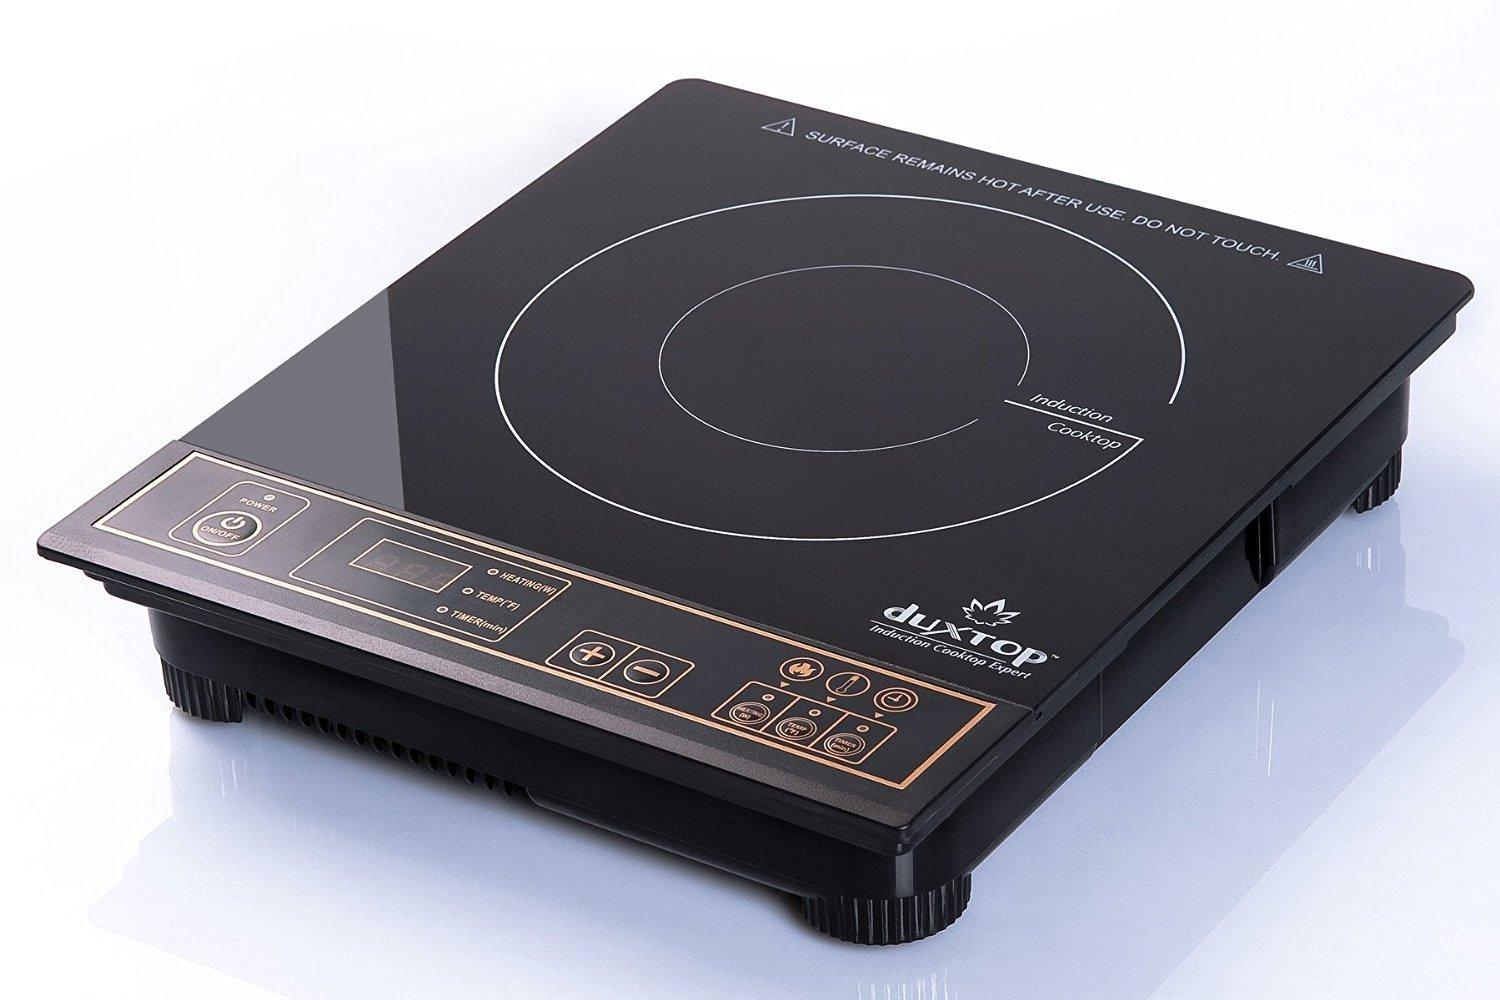 Secura 8100mc 1800w portable induction cooktop for Table induction